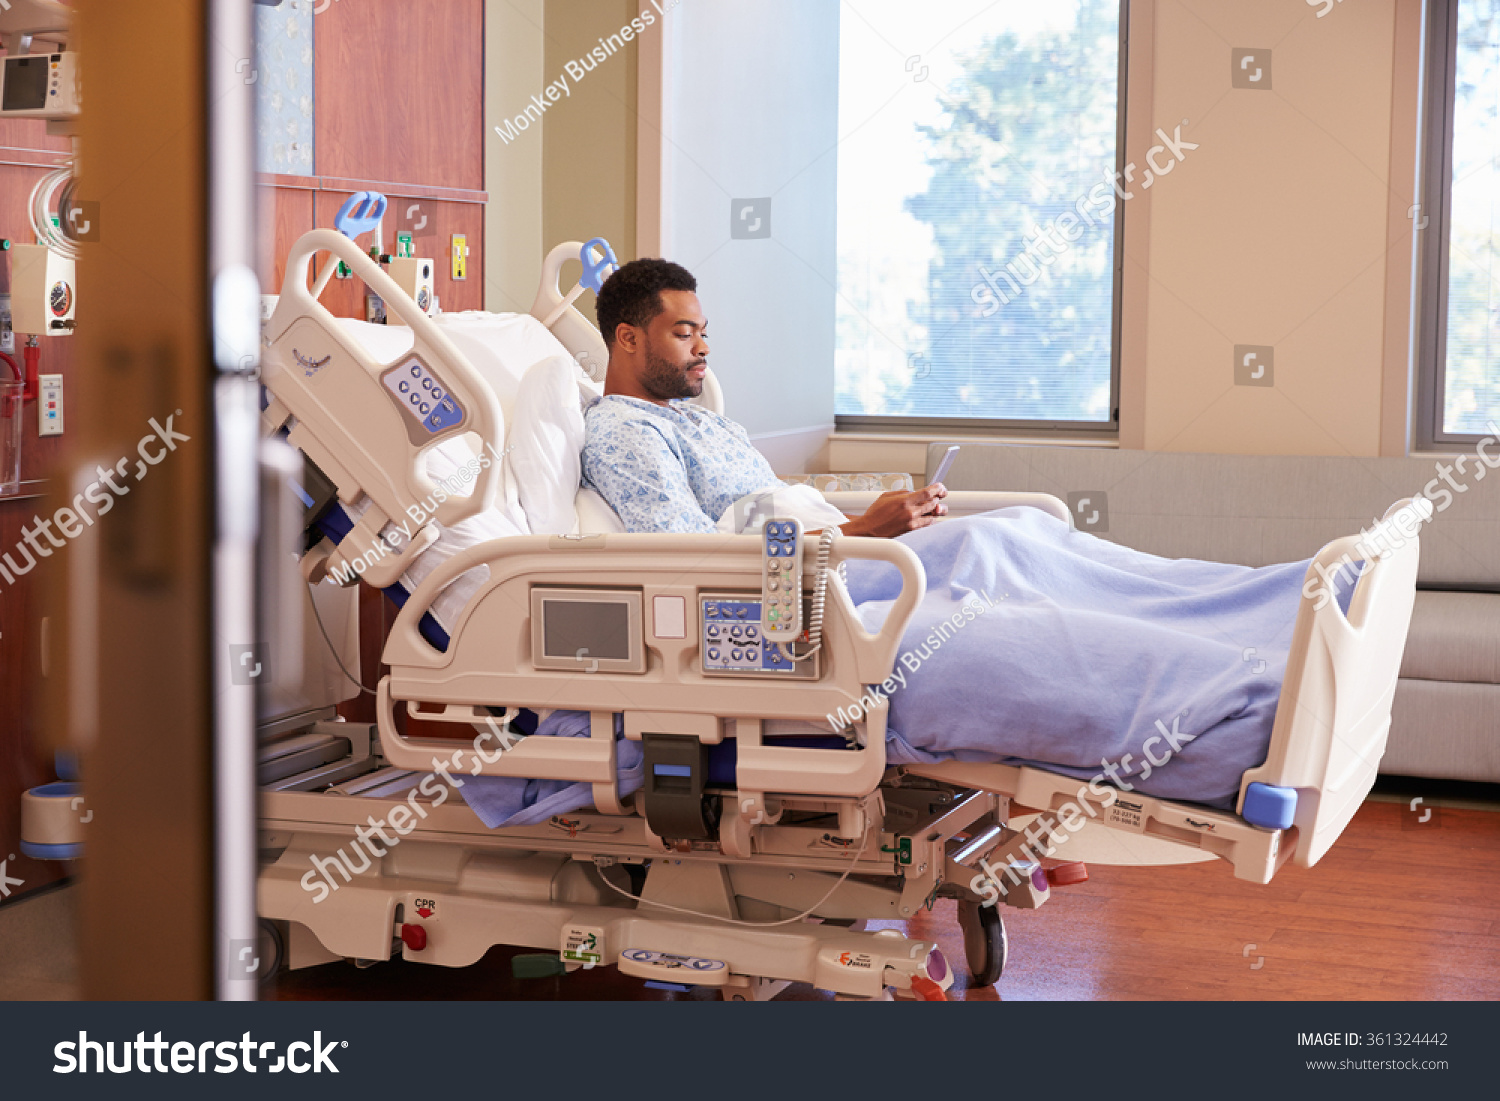 male patient hospital bed using cellphone stock photo